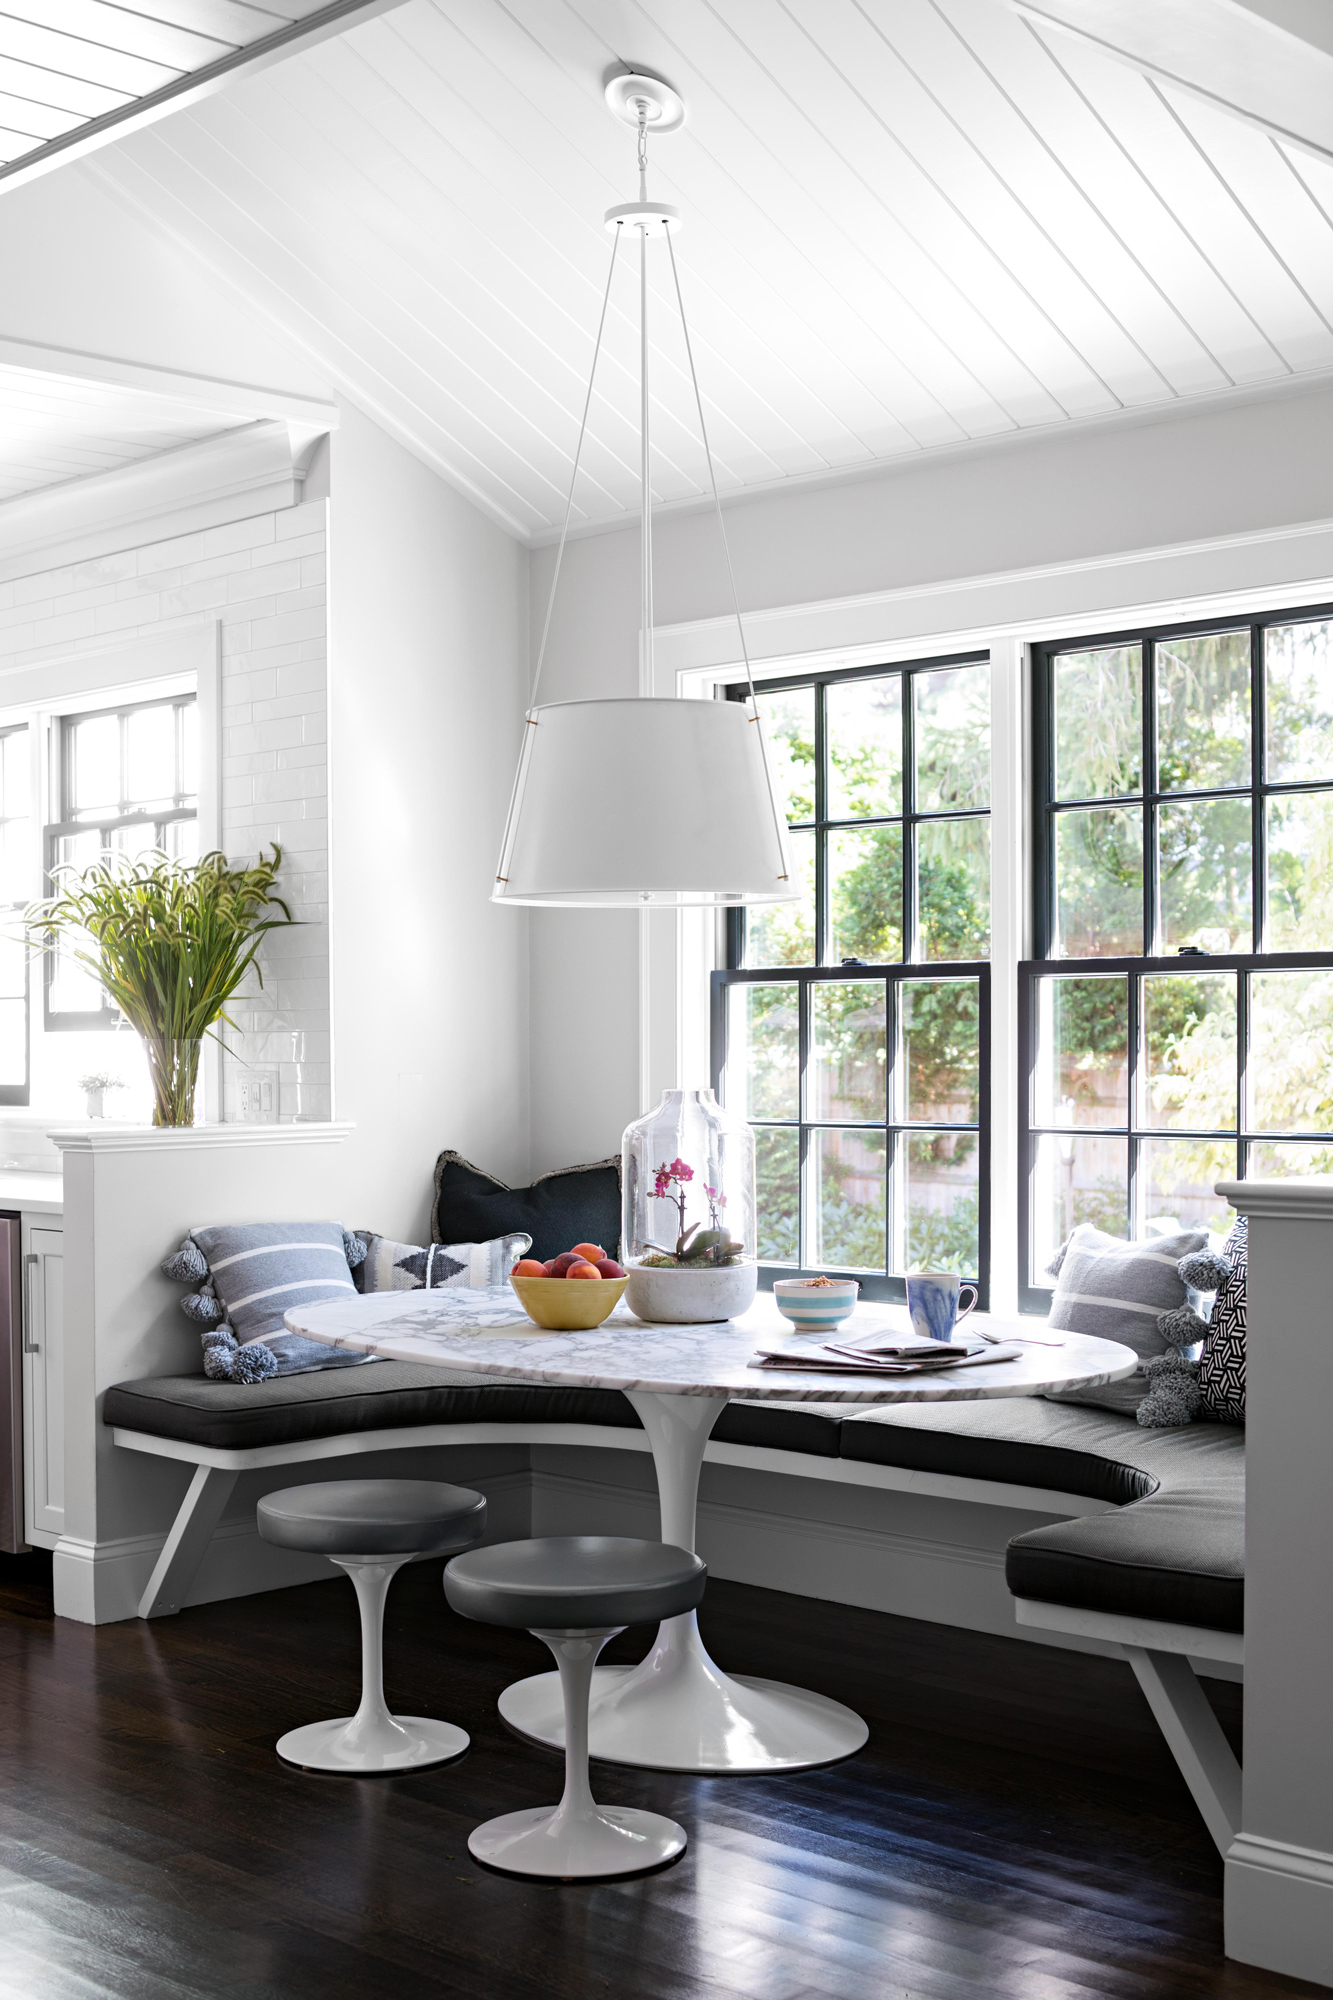 breakfast nook with circular bench